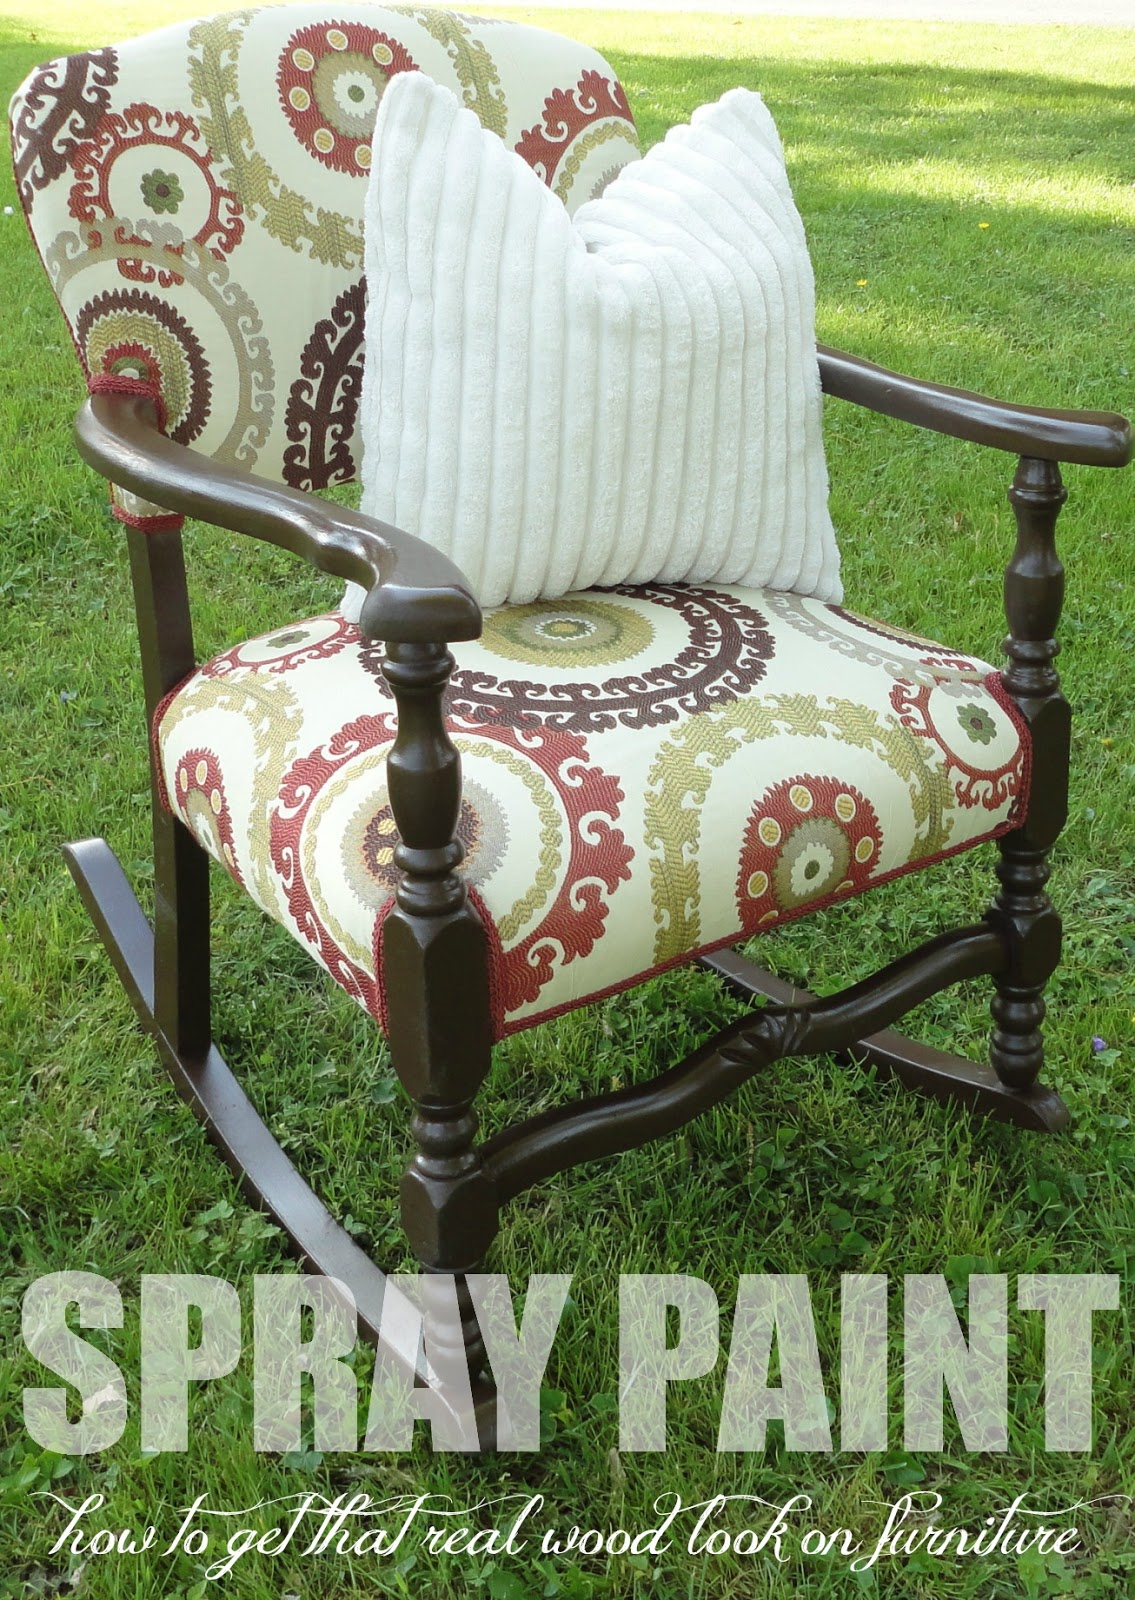 LiveLoveDIY: 10 Spray Paint Tips: What You Never Knew About Spray